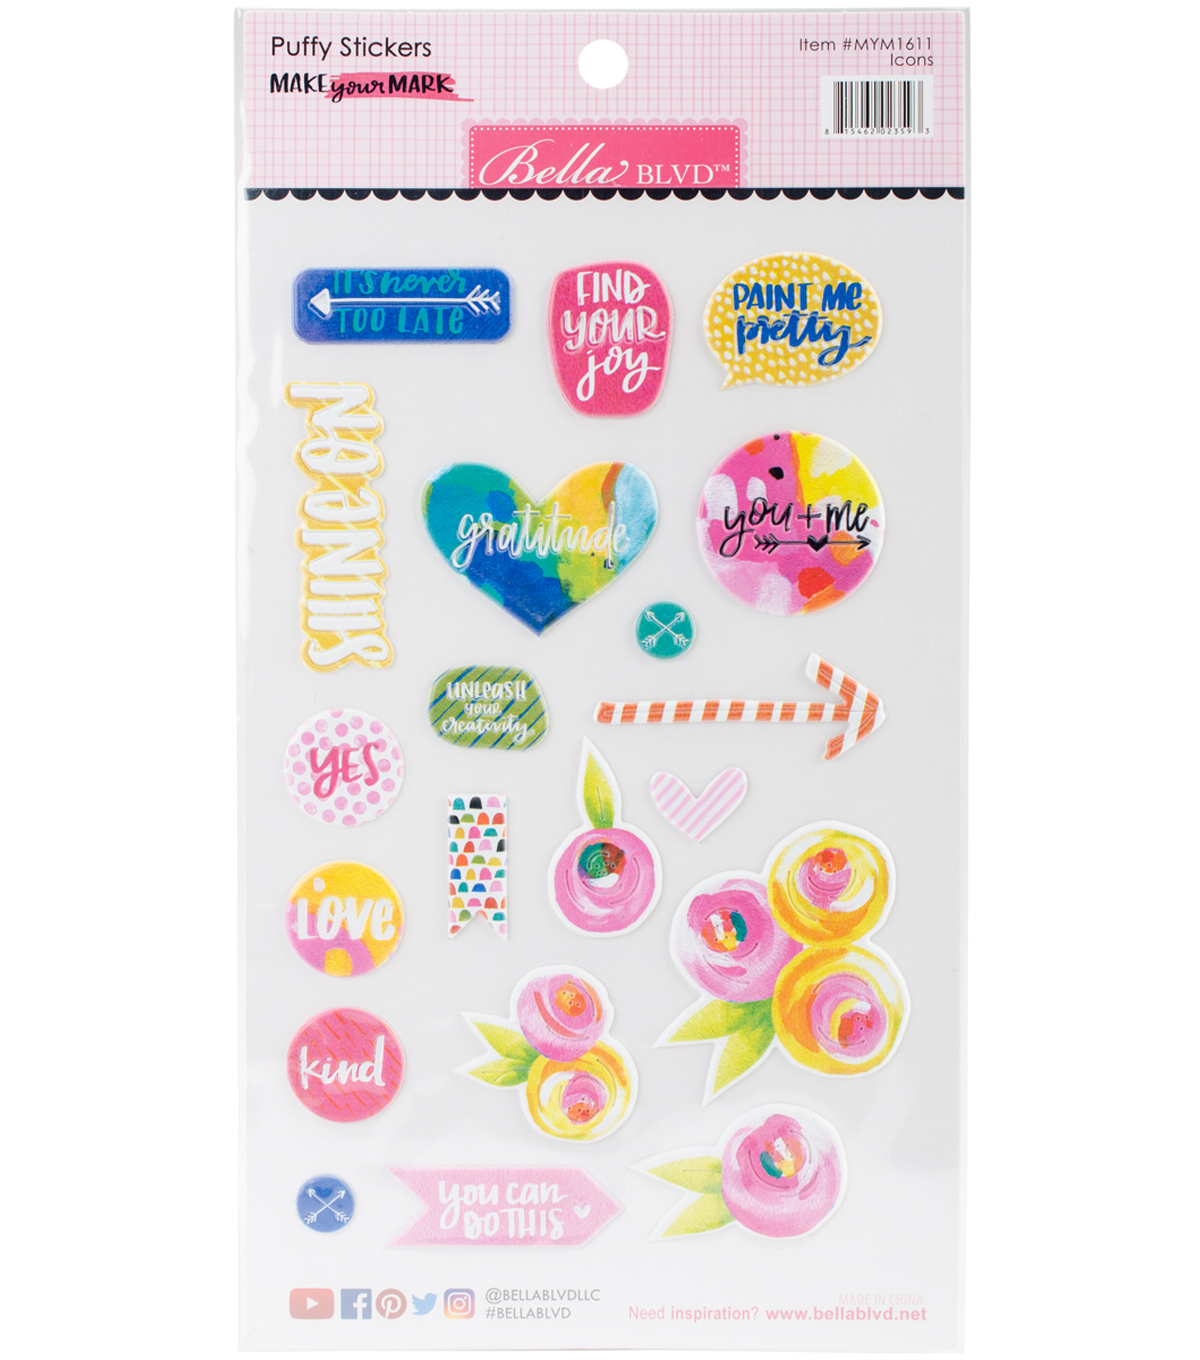 Make Your Mark Puffy Stickers-Icons